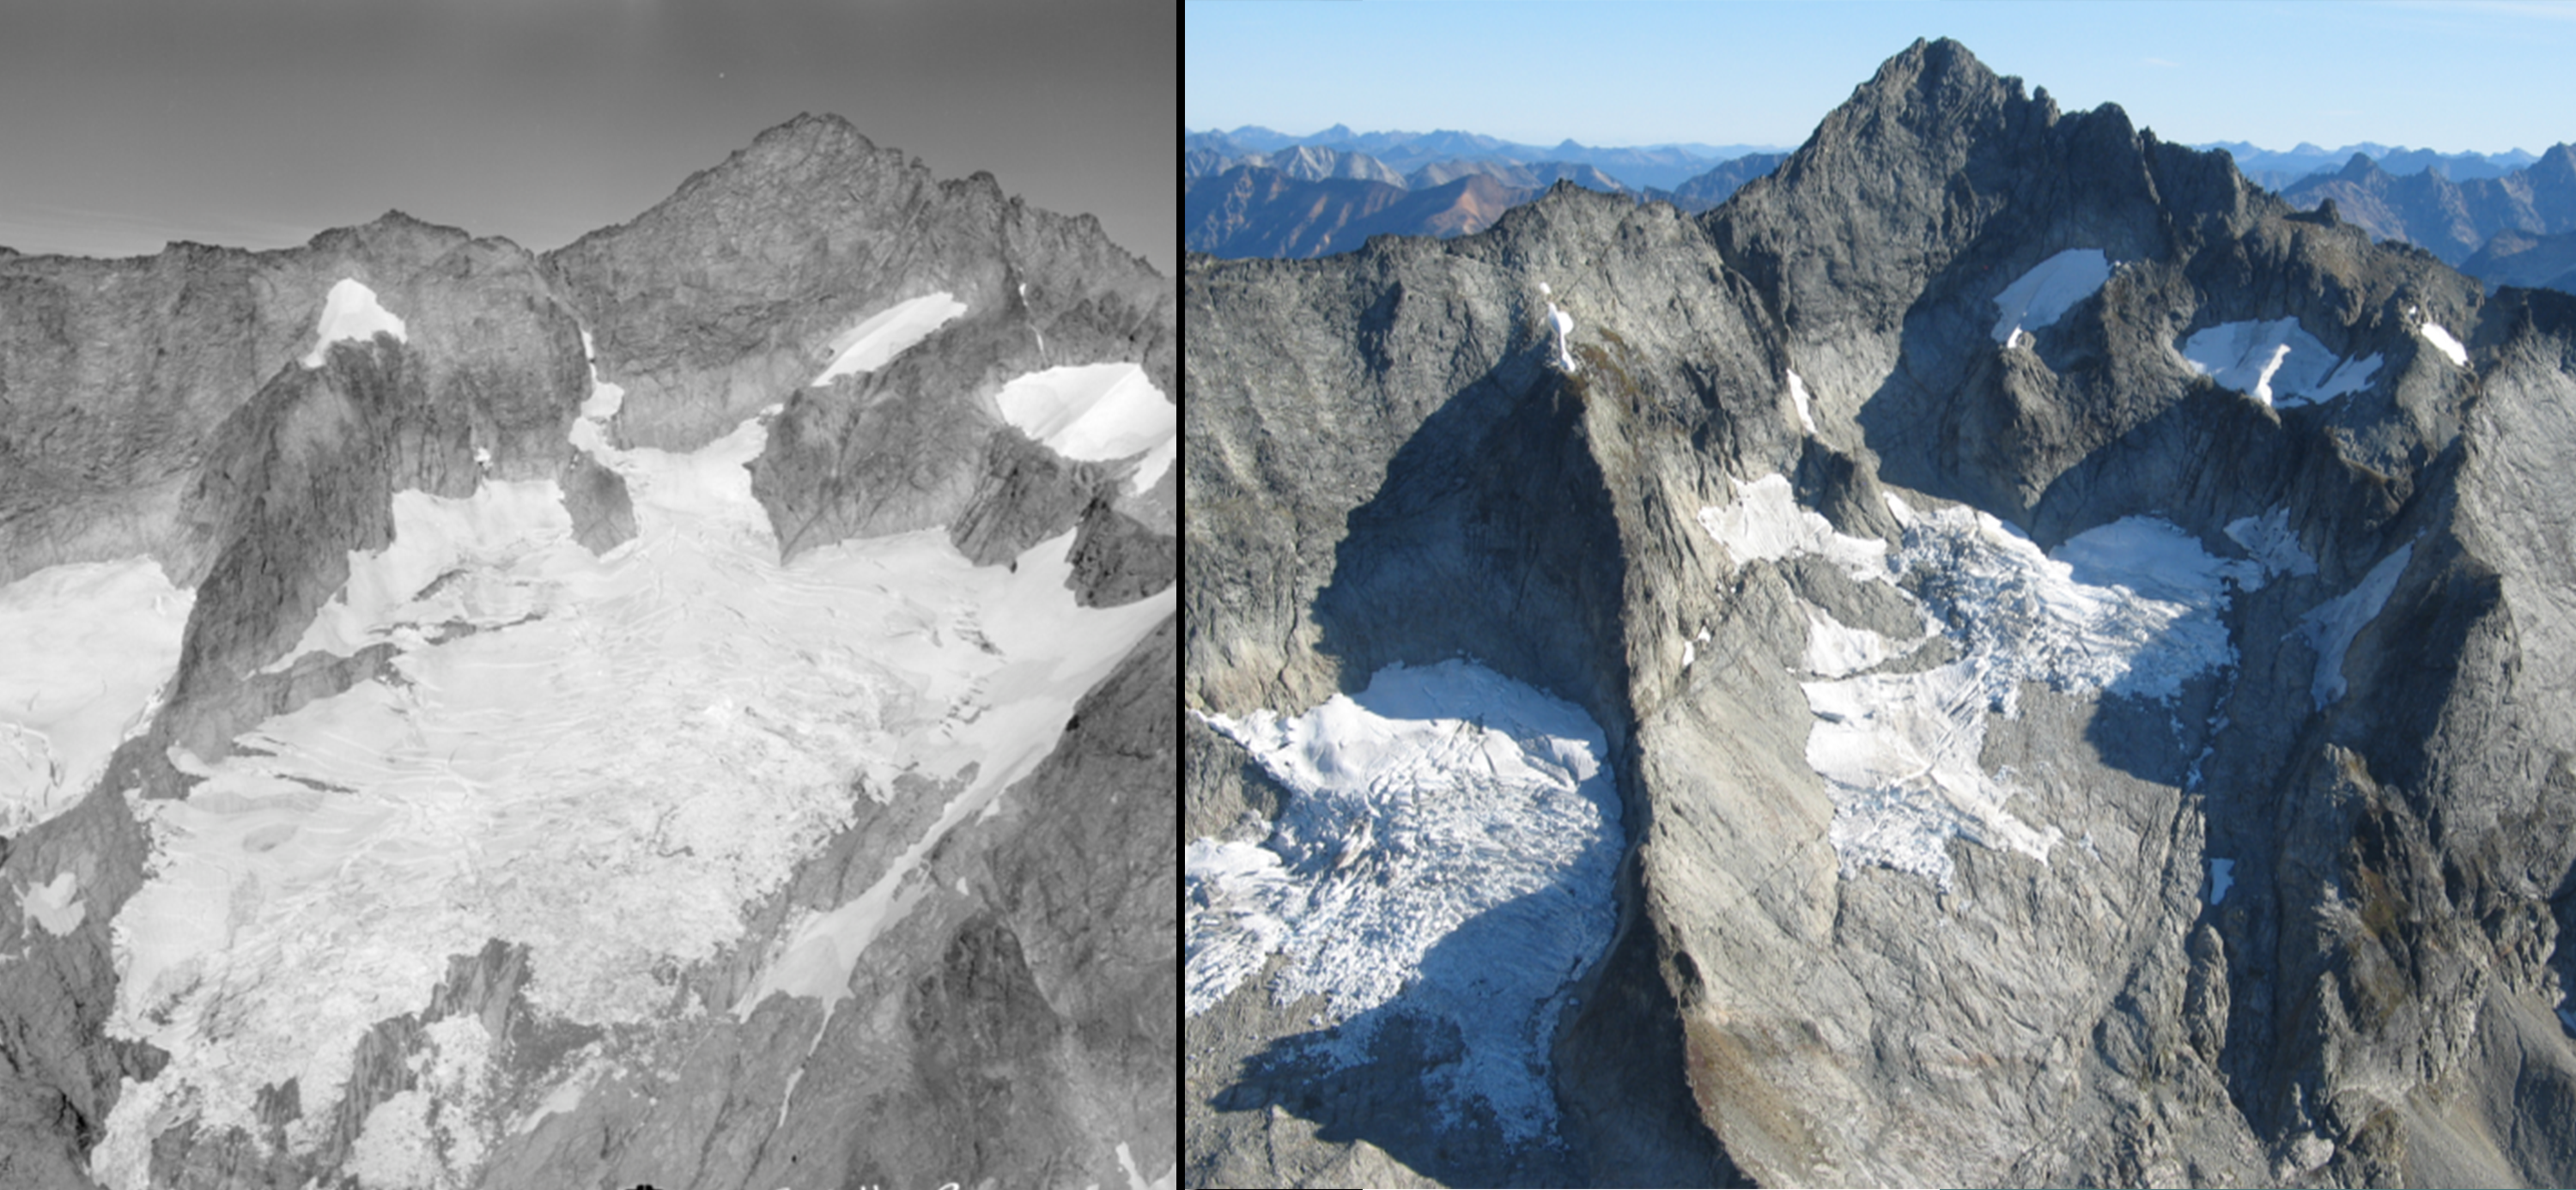 Comparison picture of the Forbidden Glacier 1960 and 2005